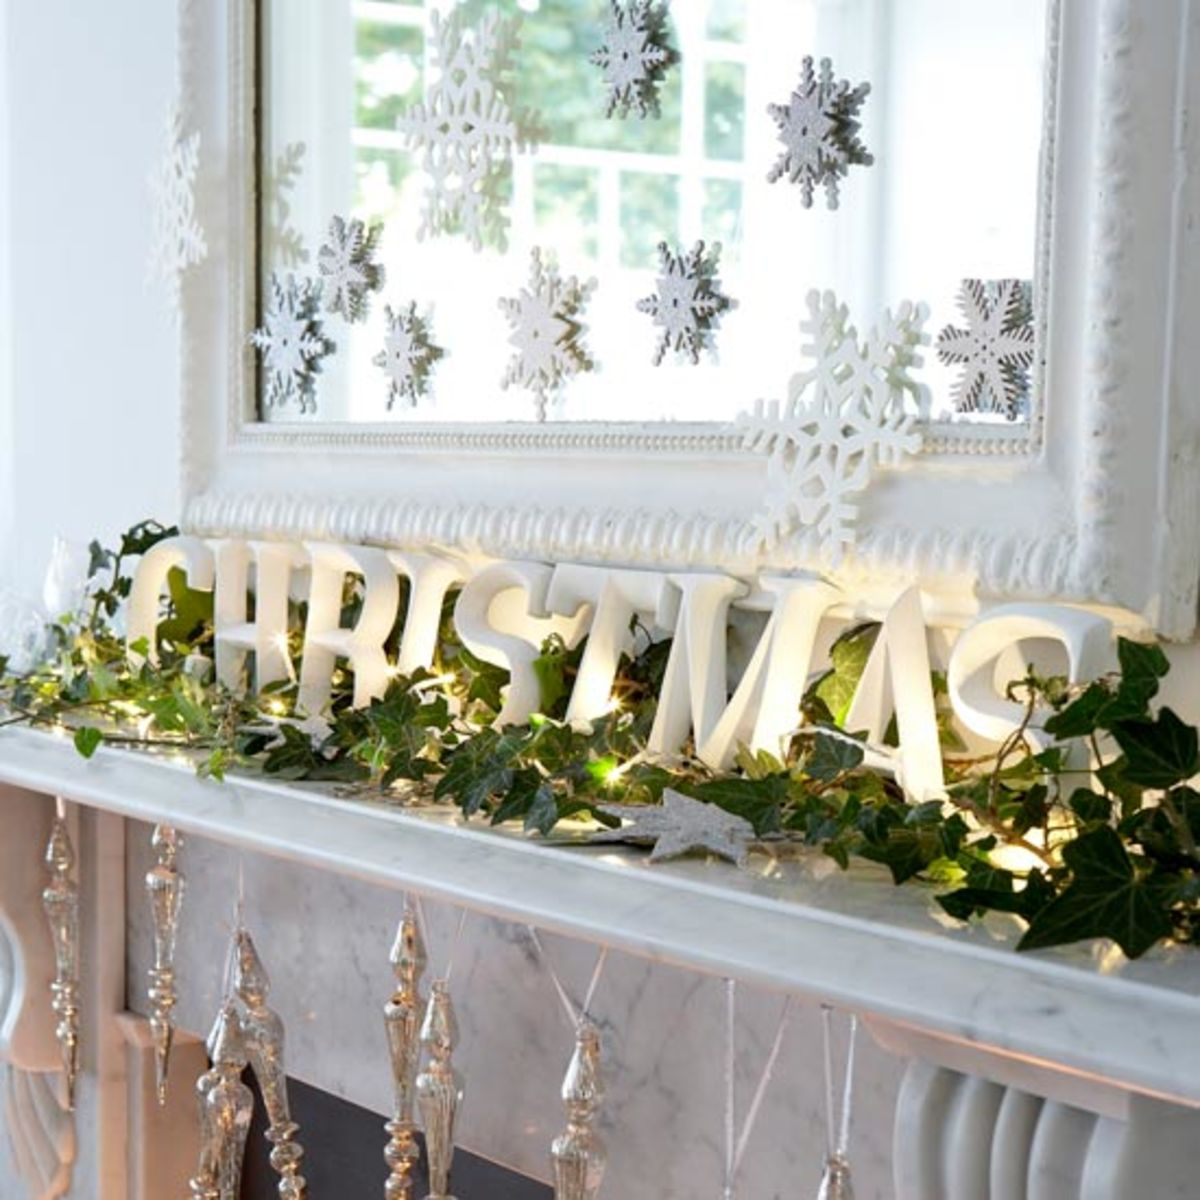 Home decorating on a budget christmas decoration ideas - Home decor on a budget ...